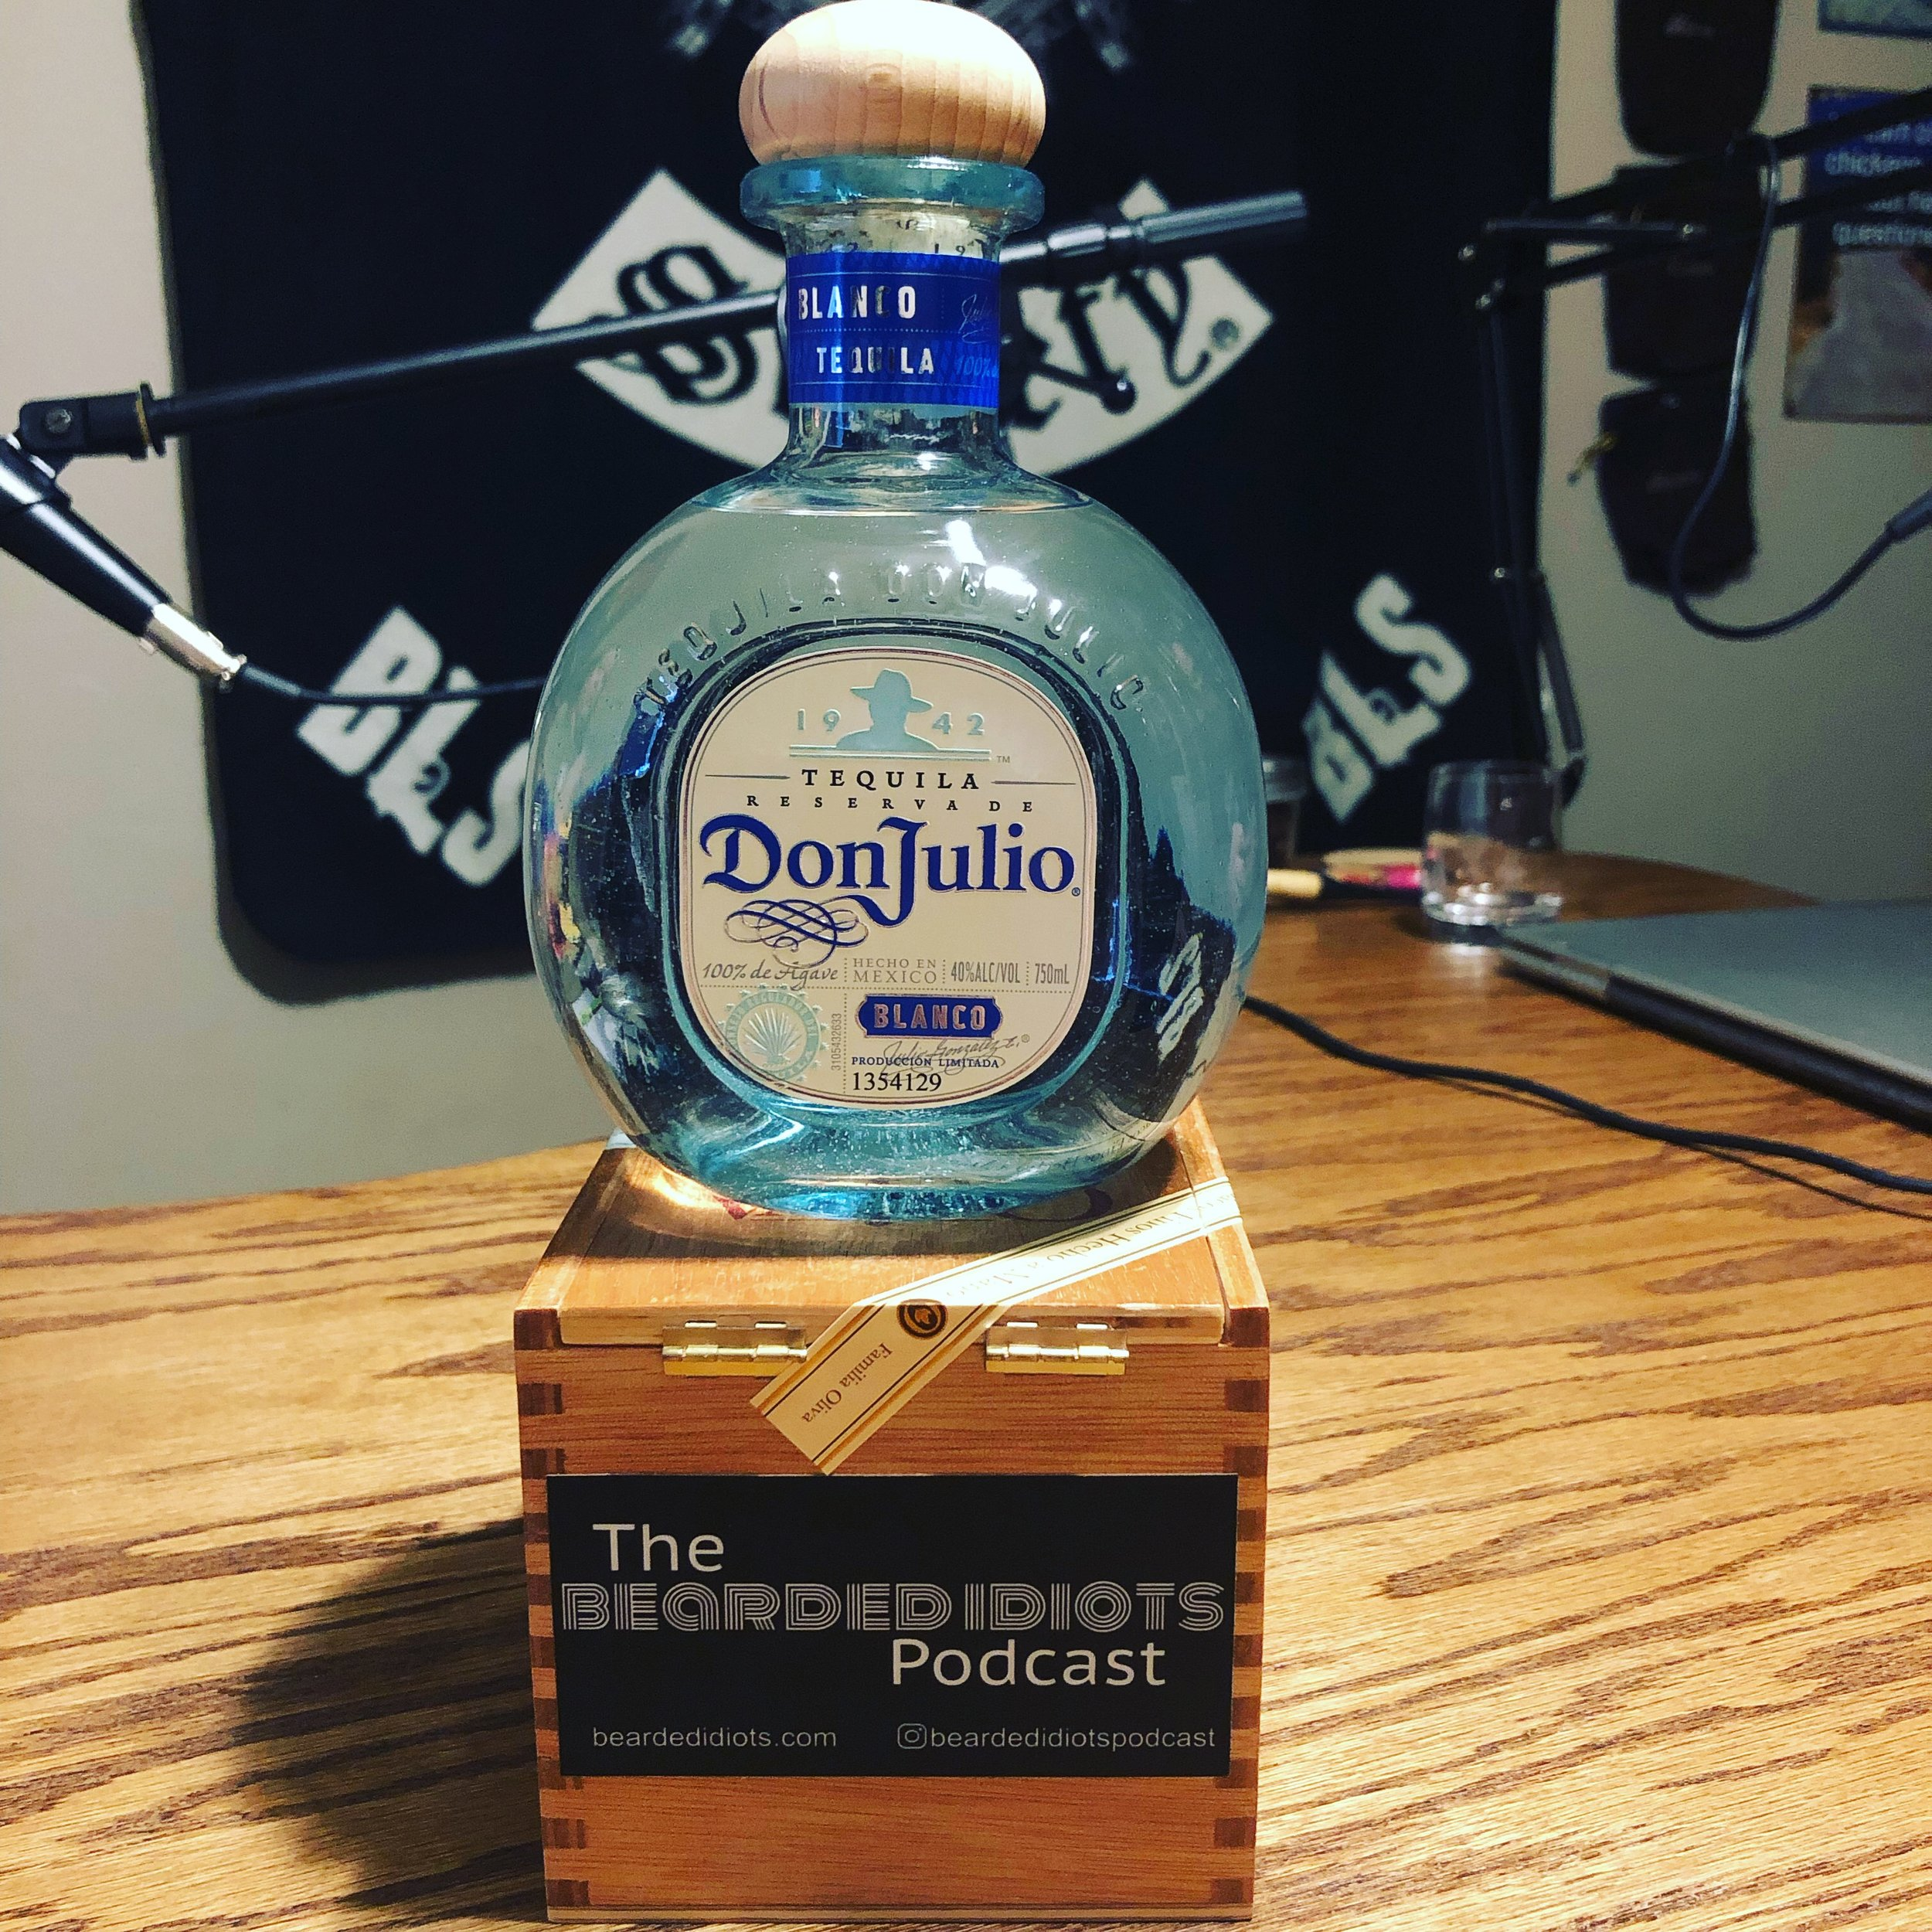 Episode the 49th - Hola Santiago - We start with a tequila review and then chat about Snyder, TX, a dog park with a bar, Podcasting with friends, and Kelly's preference in women